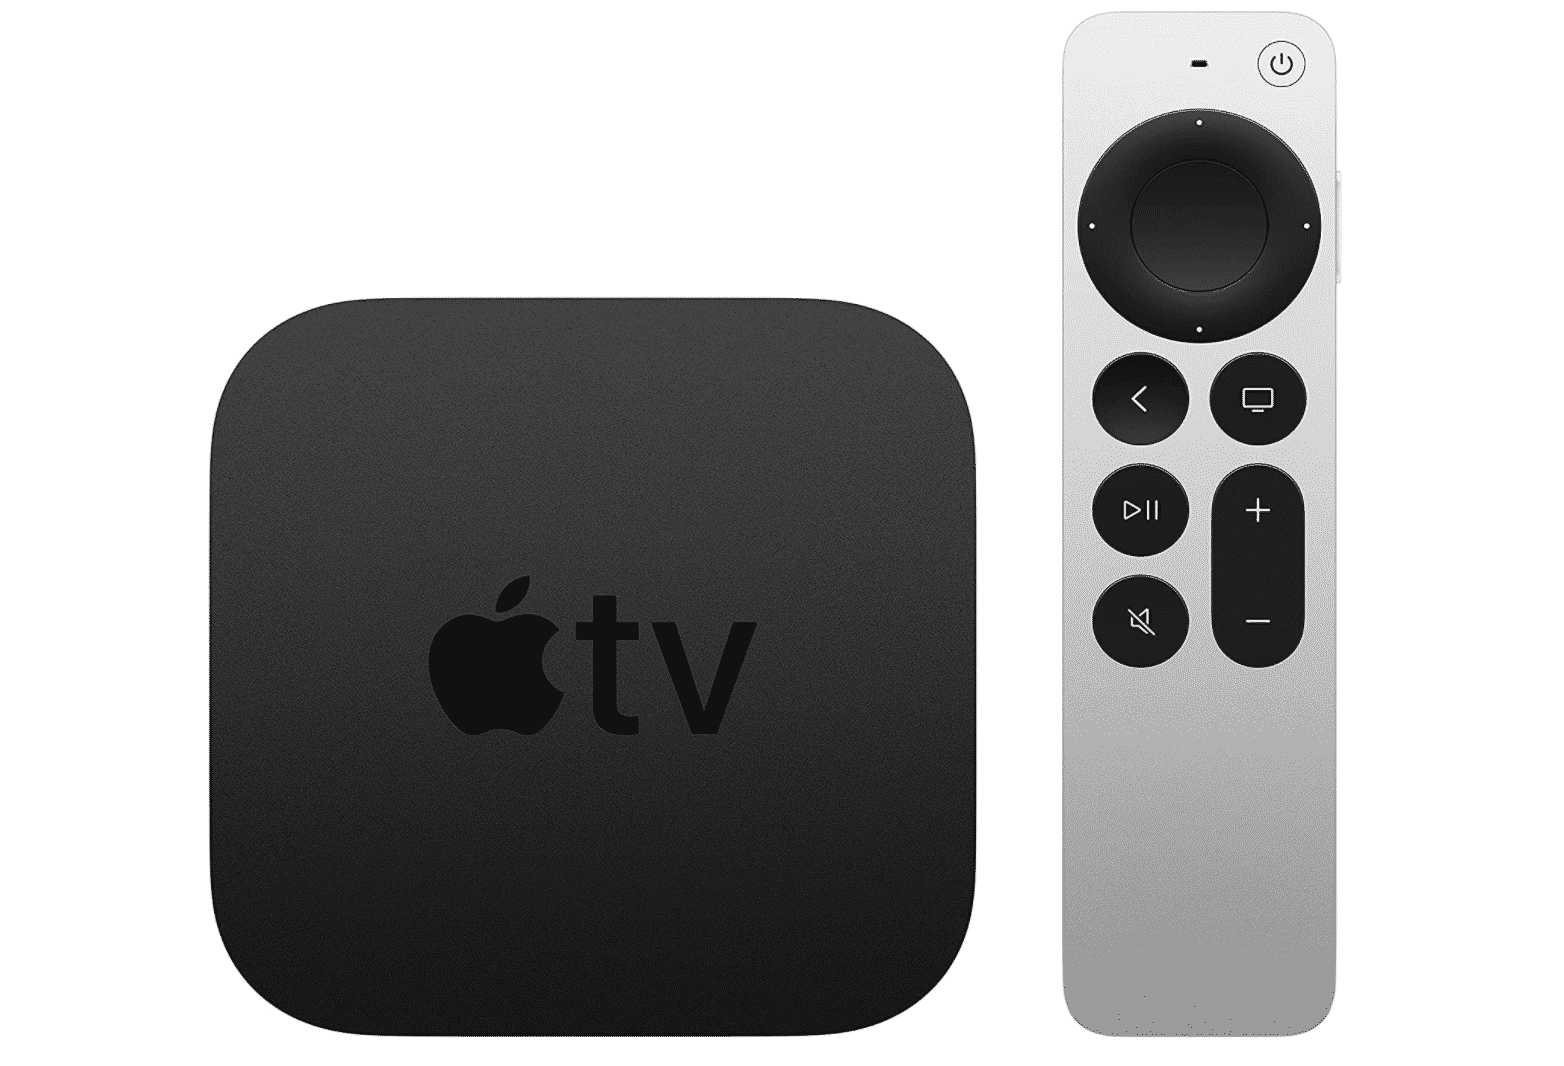 New Apple TV 4K Gets Rare Price Cut, Now Only $170